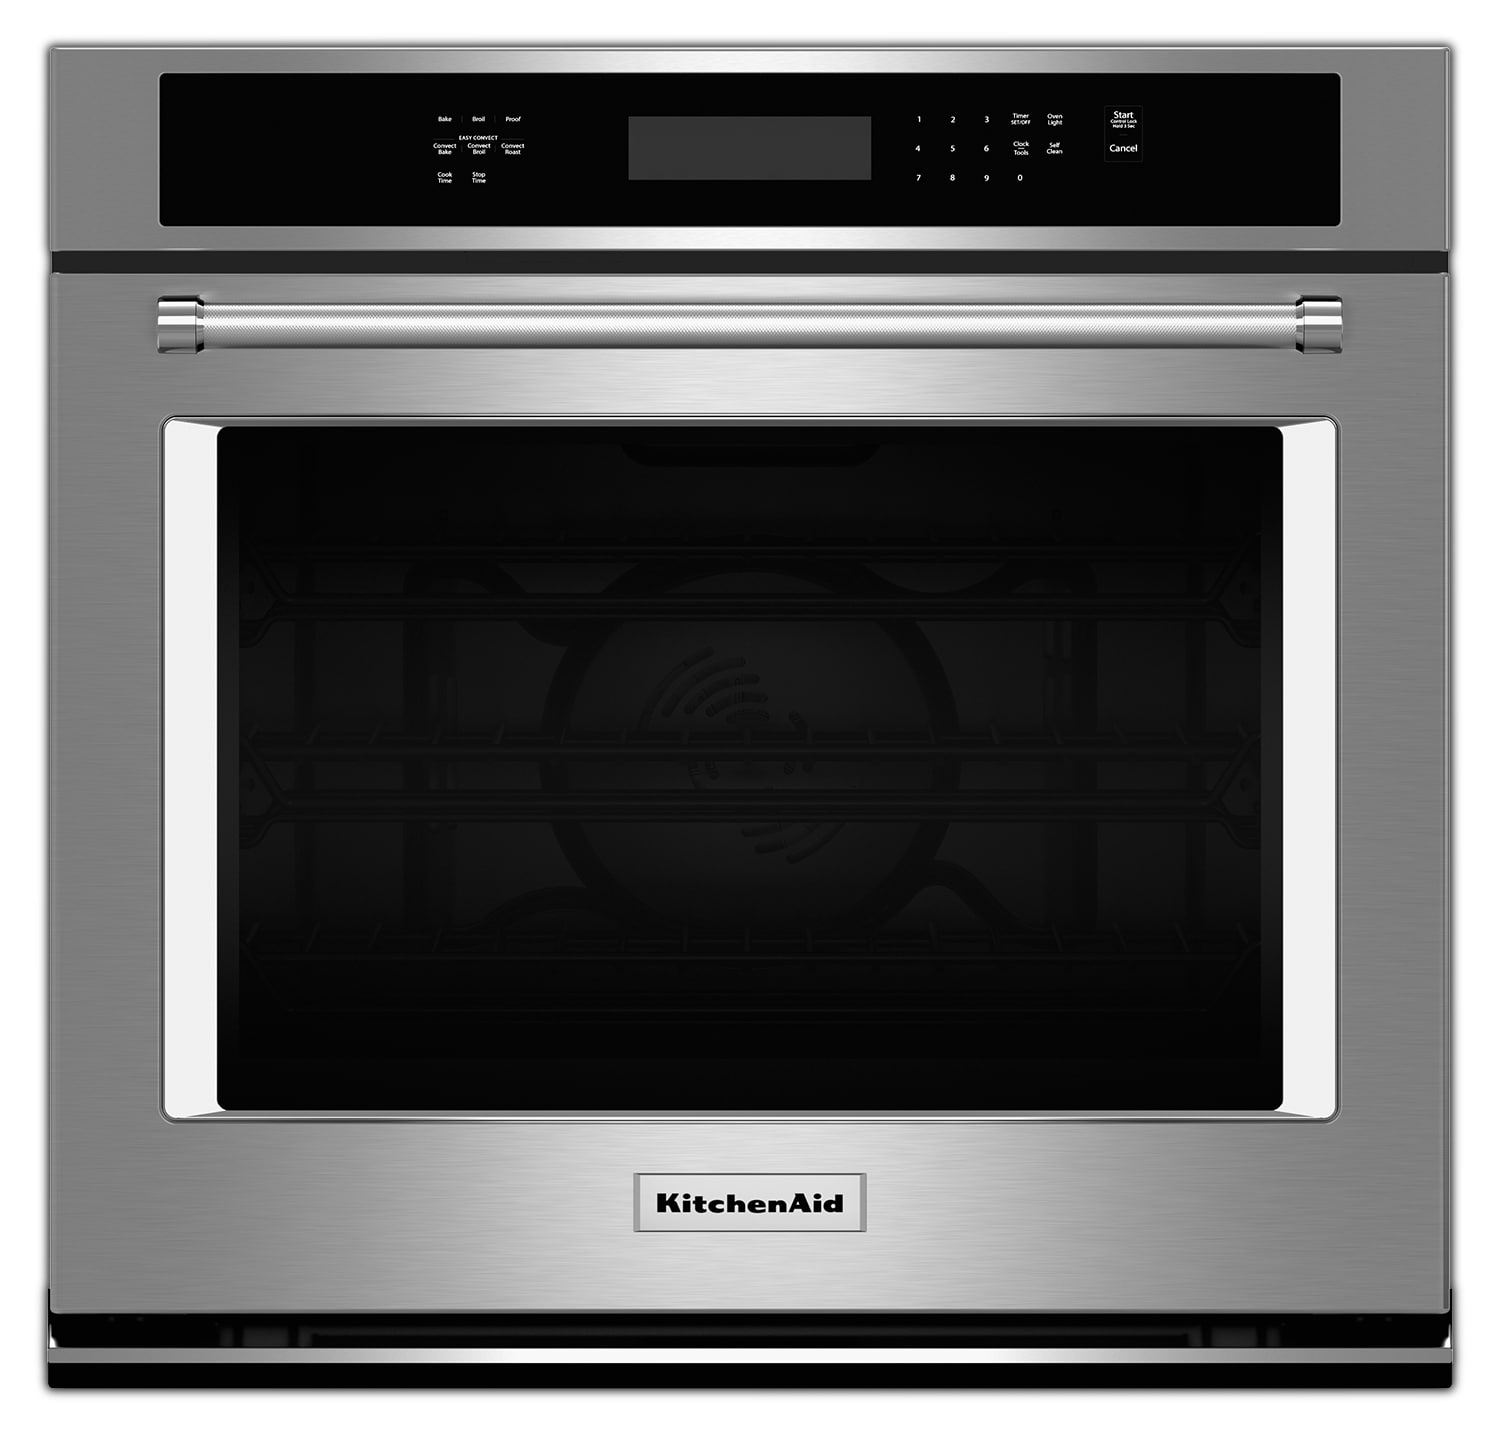 Cooking Products - KitchenAid Stainless Steel Electric Wall Oven (4.3 Cu. Ft.) - KOSE507ESS